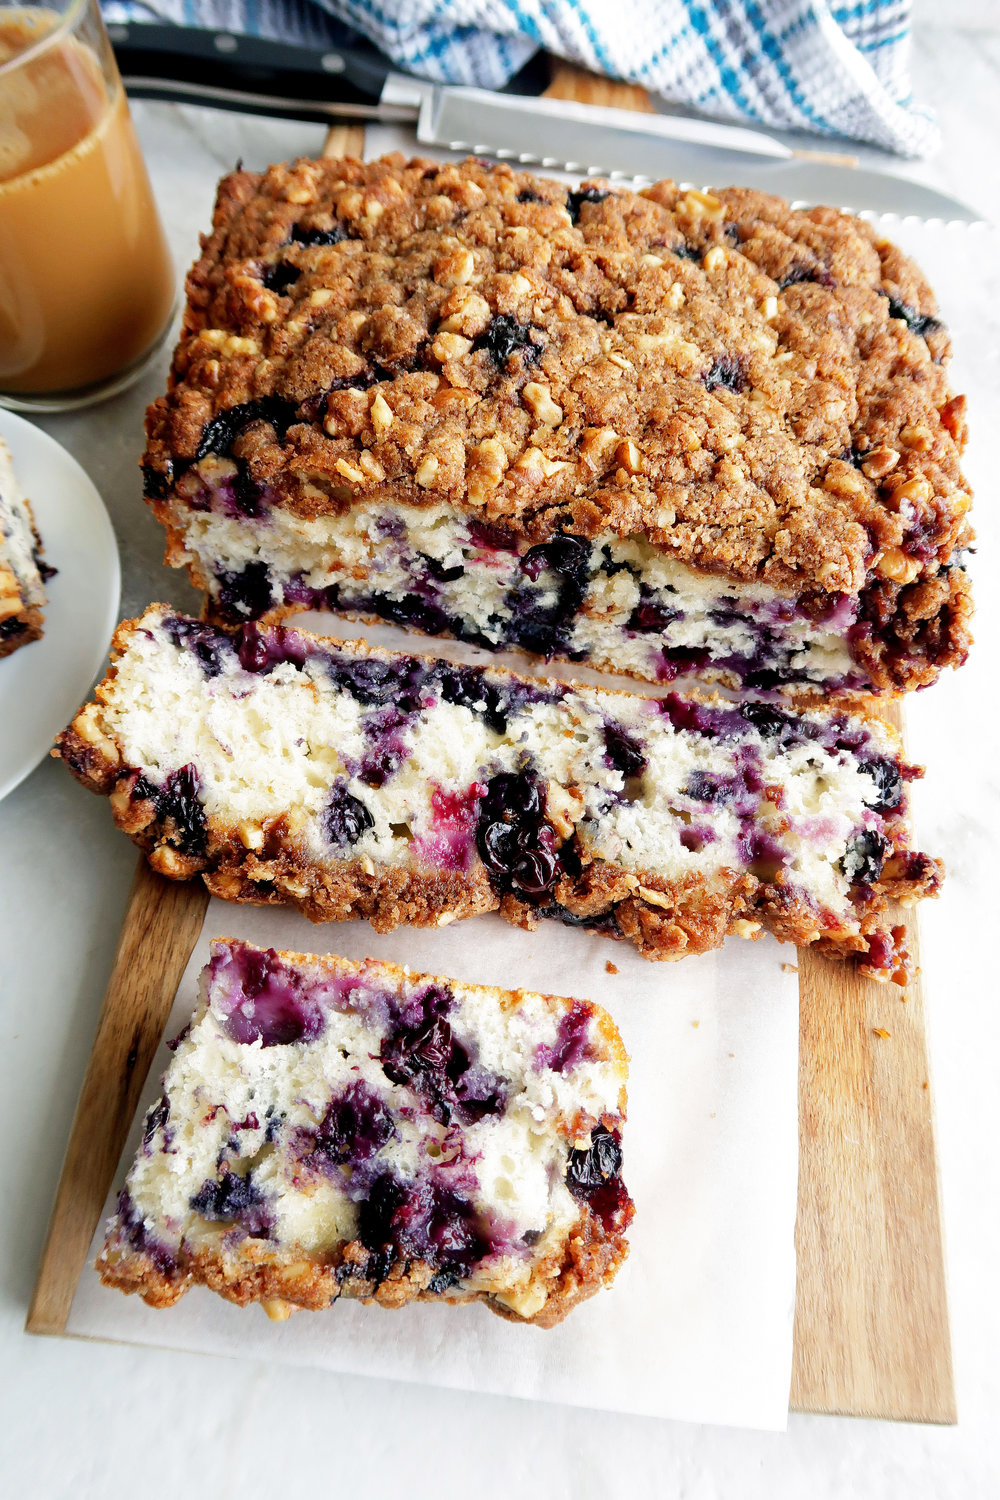 Sliced blueberry coffee cake with brown sugar-walnut crumble on a long wooden board.